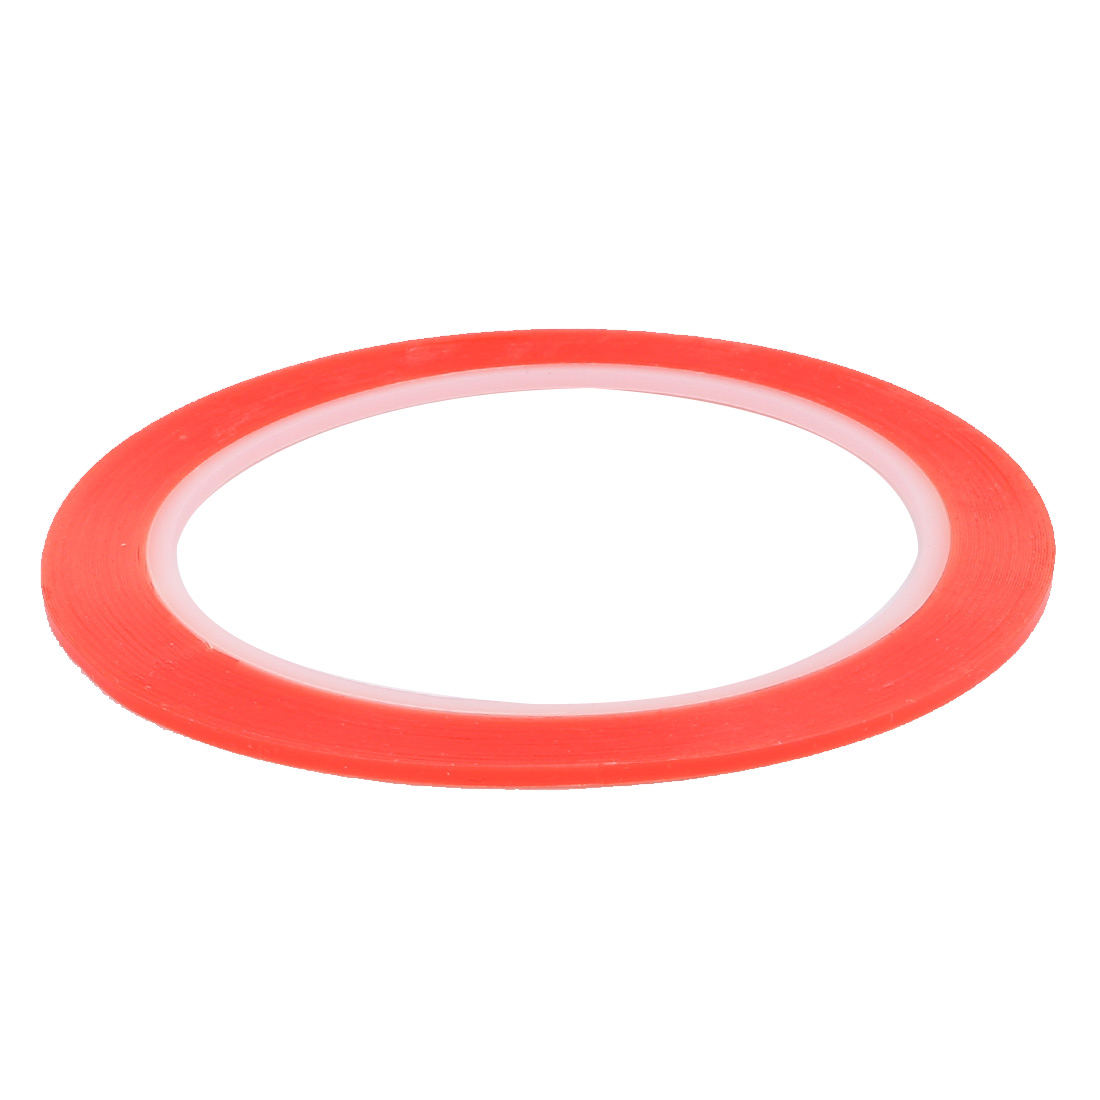 0.2mmx3mm 10M Length Sponge Tape Double Side Strong Adhesive Dustproof Red Clear - image 1 of 3